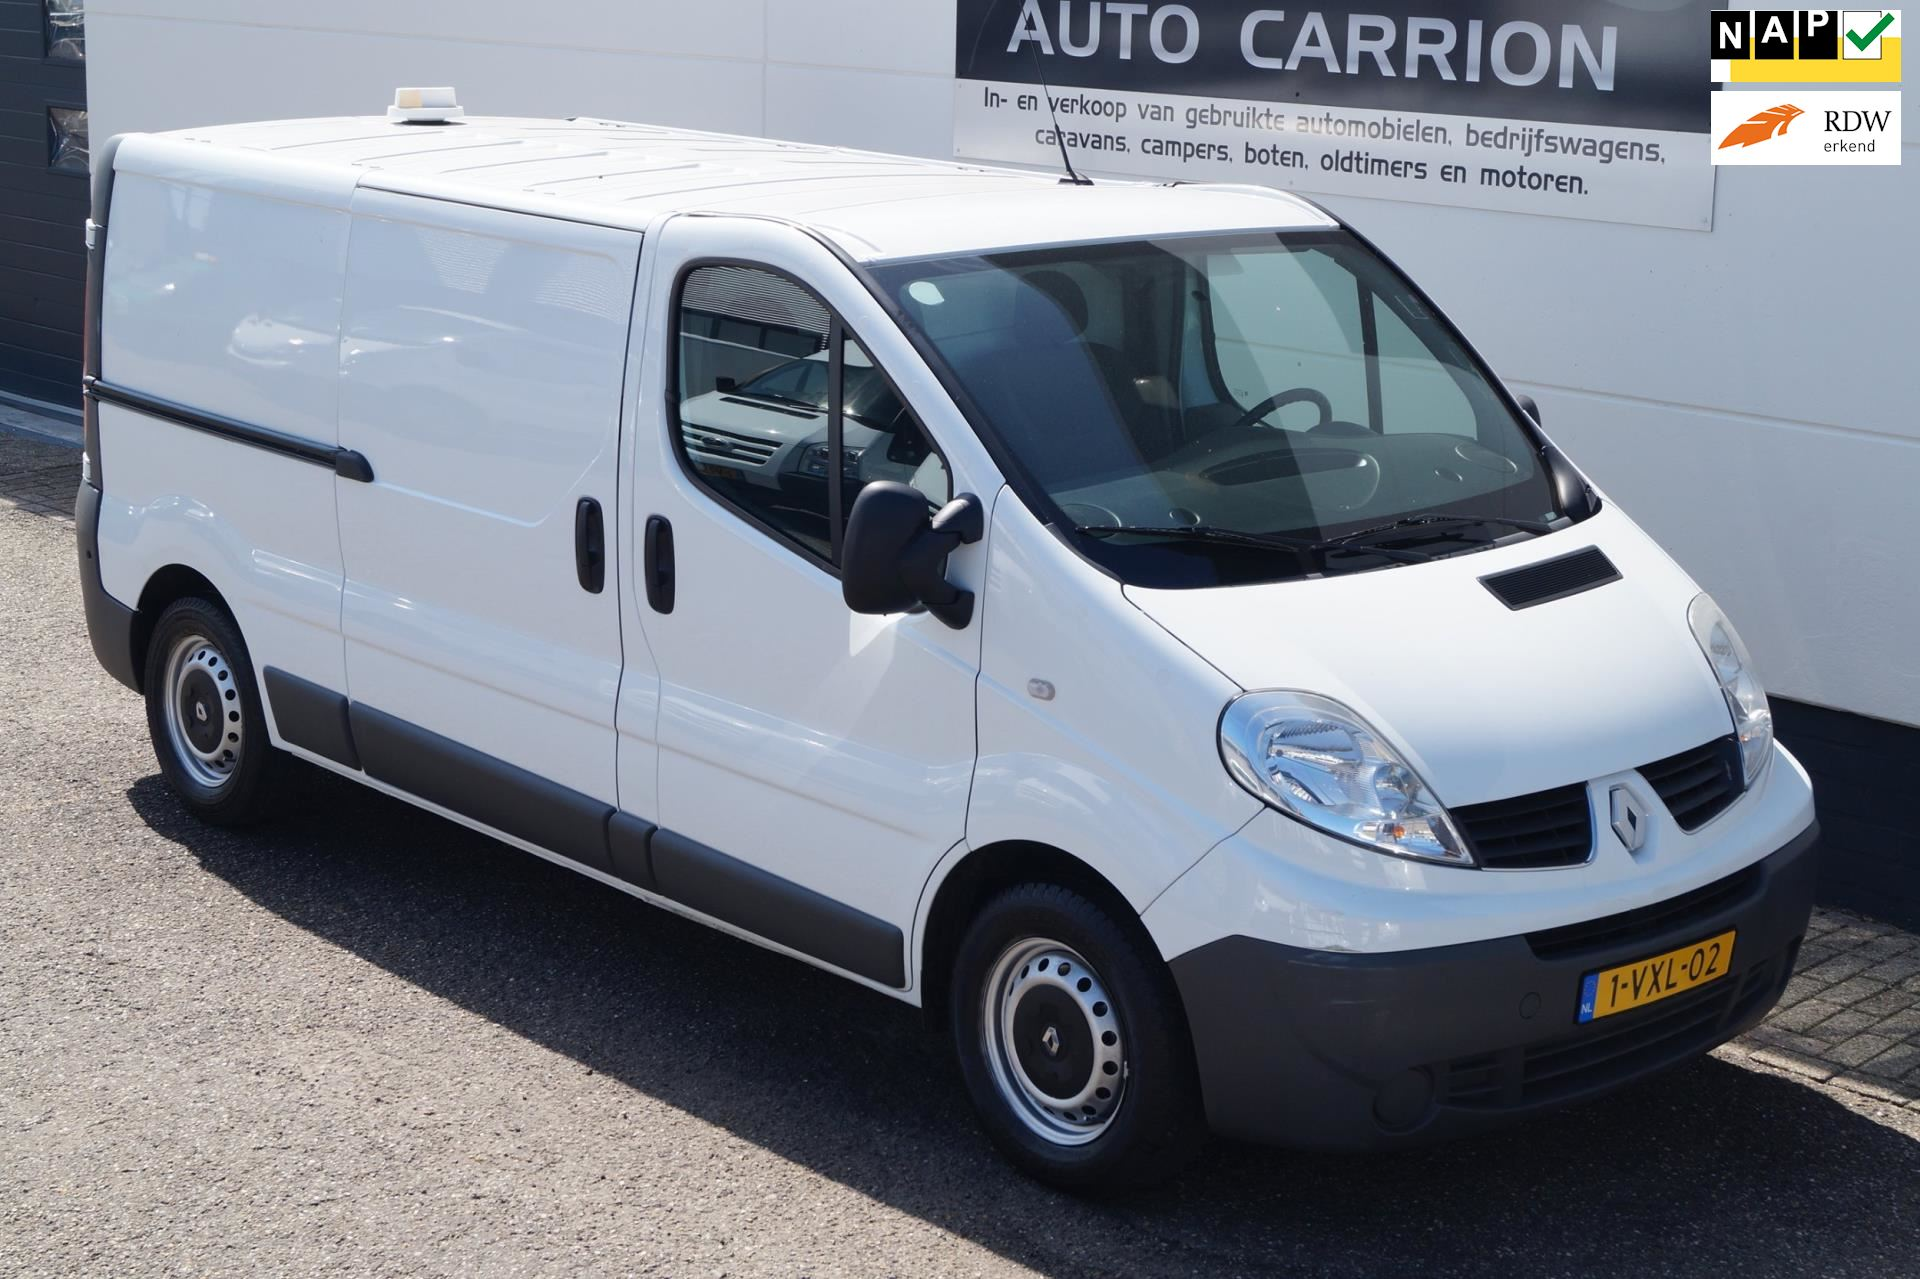 Renault Trafic occasion - CARRION